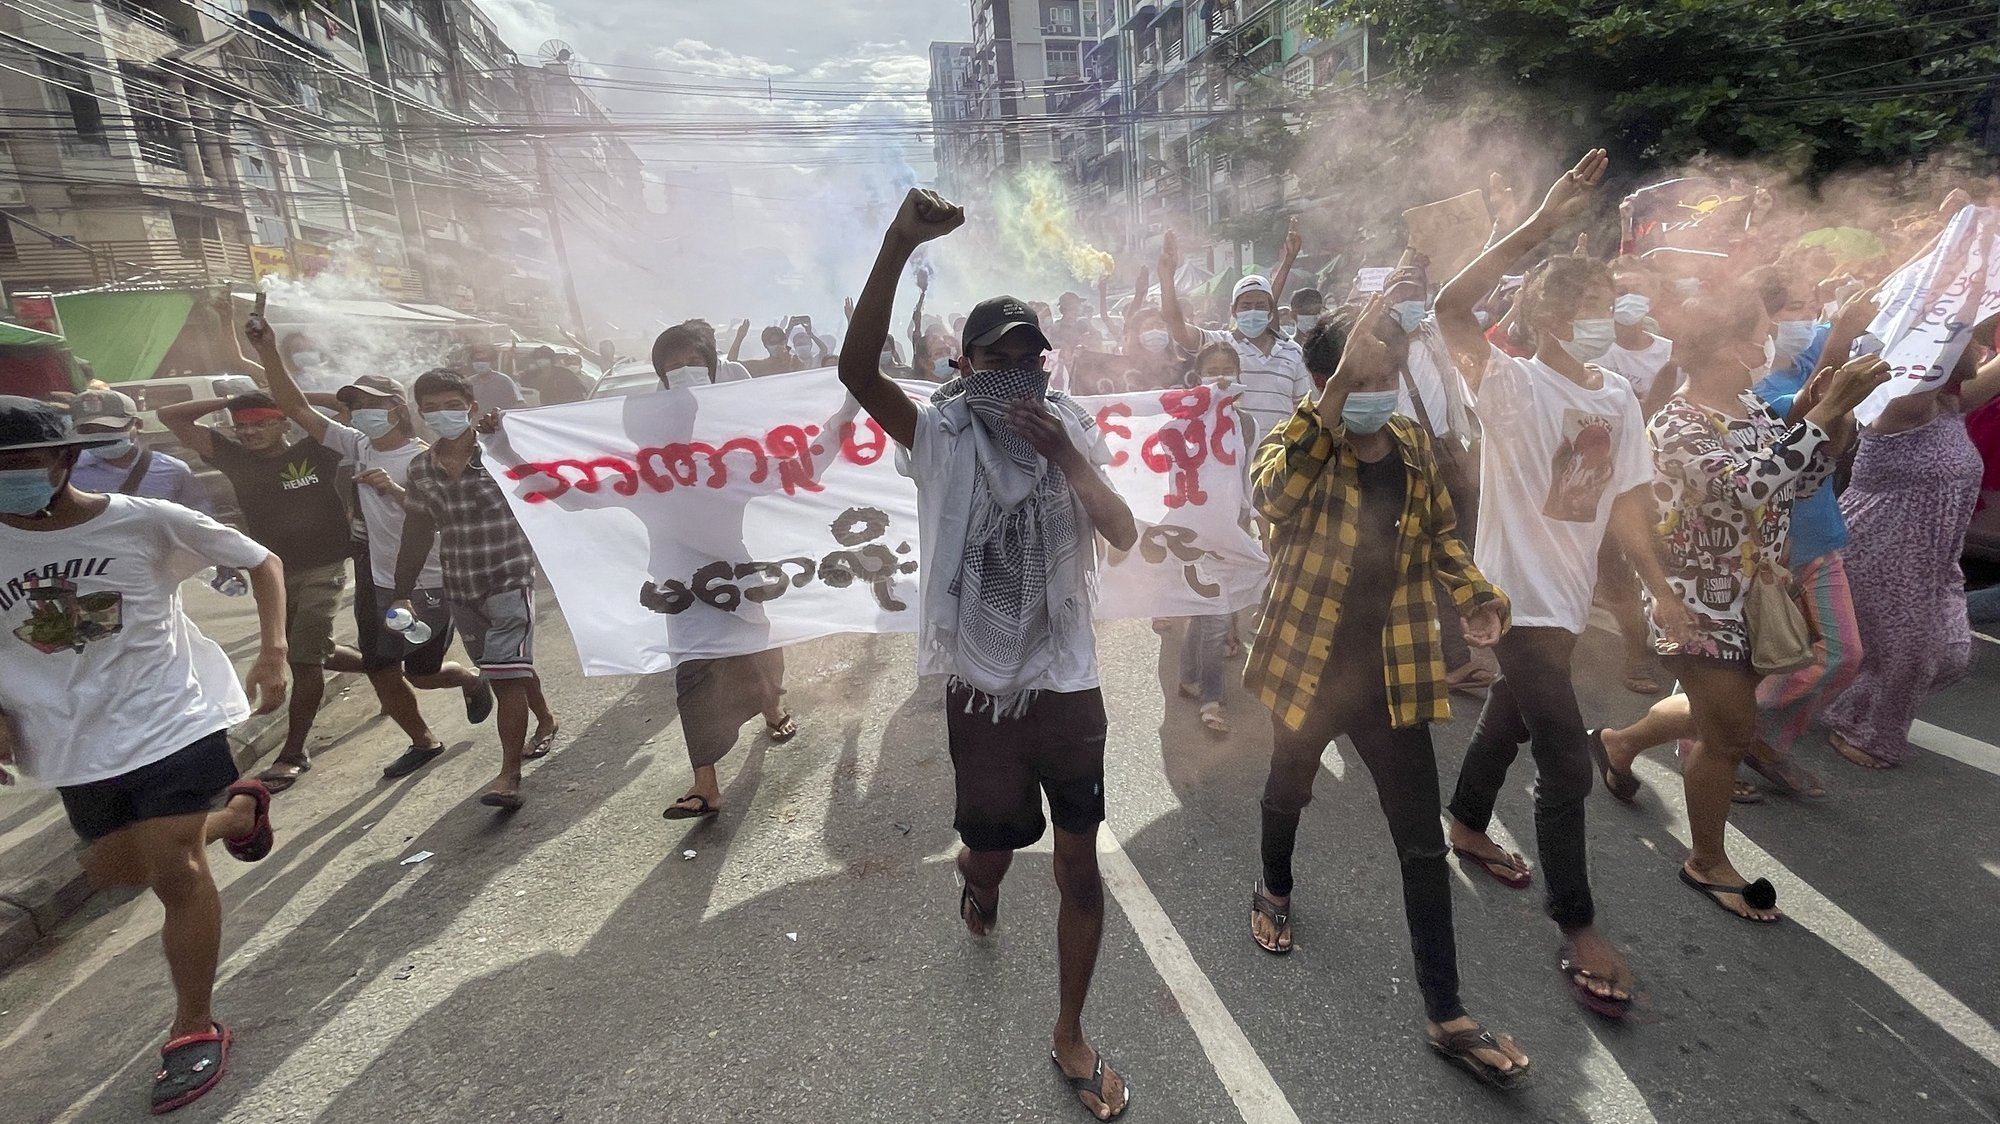 epa09319891 Demonstrators holding posters and flares as they march during an anti-military coup protest at downtown area in Yangon, Myanmar, 03 July 2021. According to the UN Office for the Coordination of Humanitarian Affairs (UN OCHA), at least 230,000 people have been displaced due to violence, armed clashes and insecurity since the military seized power on 01 February 2021.  EPA/STRINGER